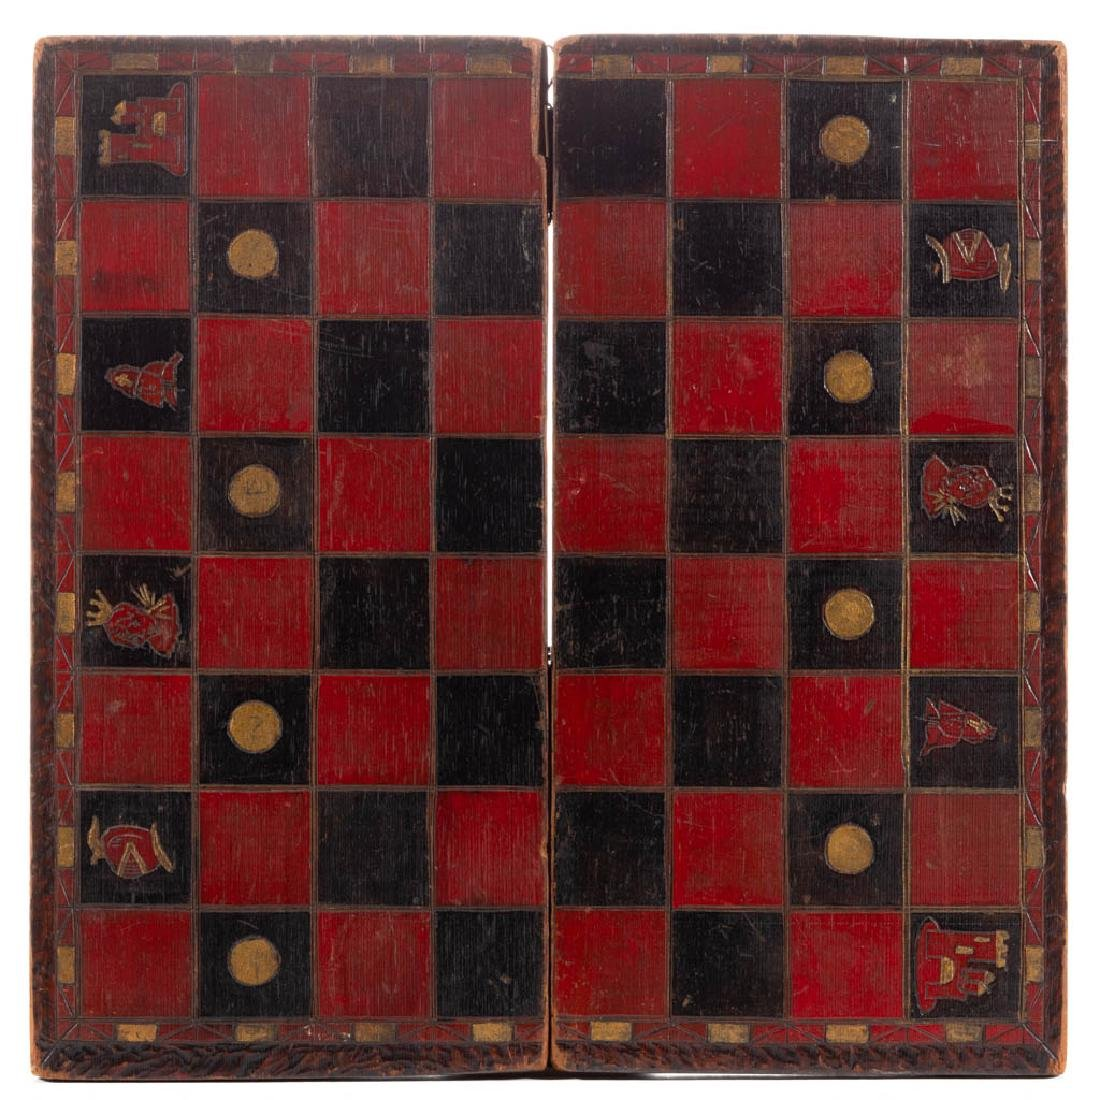 FOLK ART CARVED AND PAINTED WALNUT GAMEBOARD